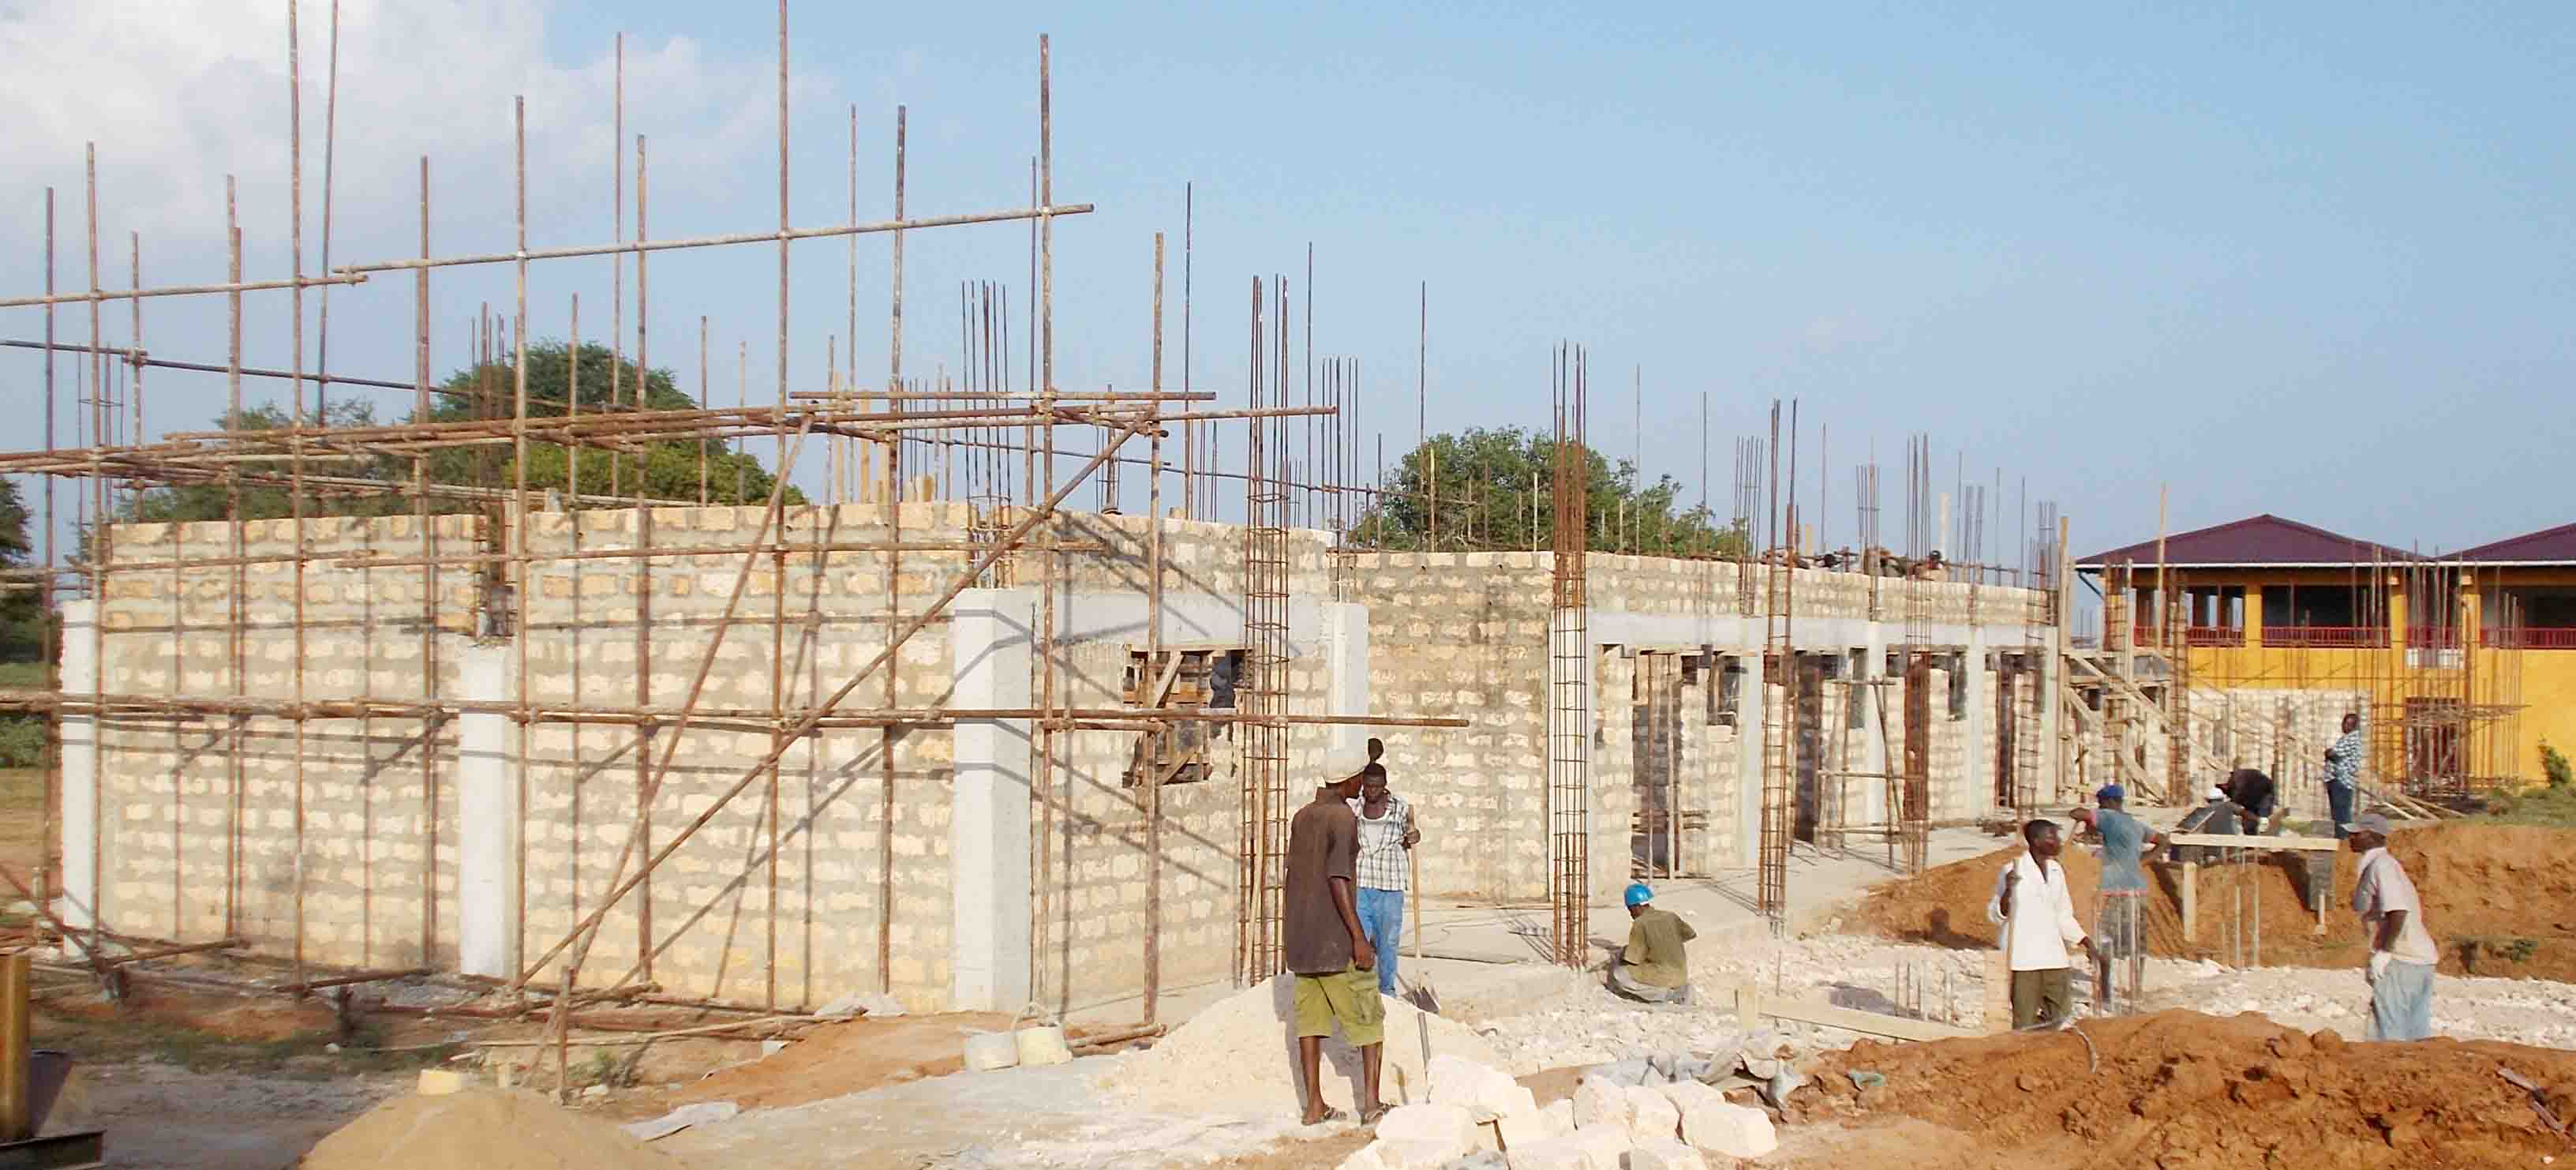 School Building under construction; Community Centre in the background